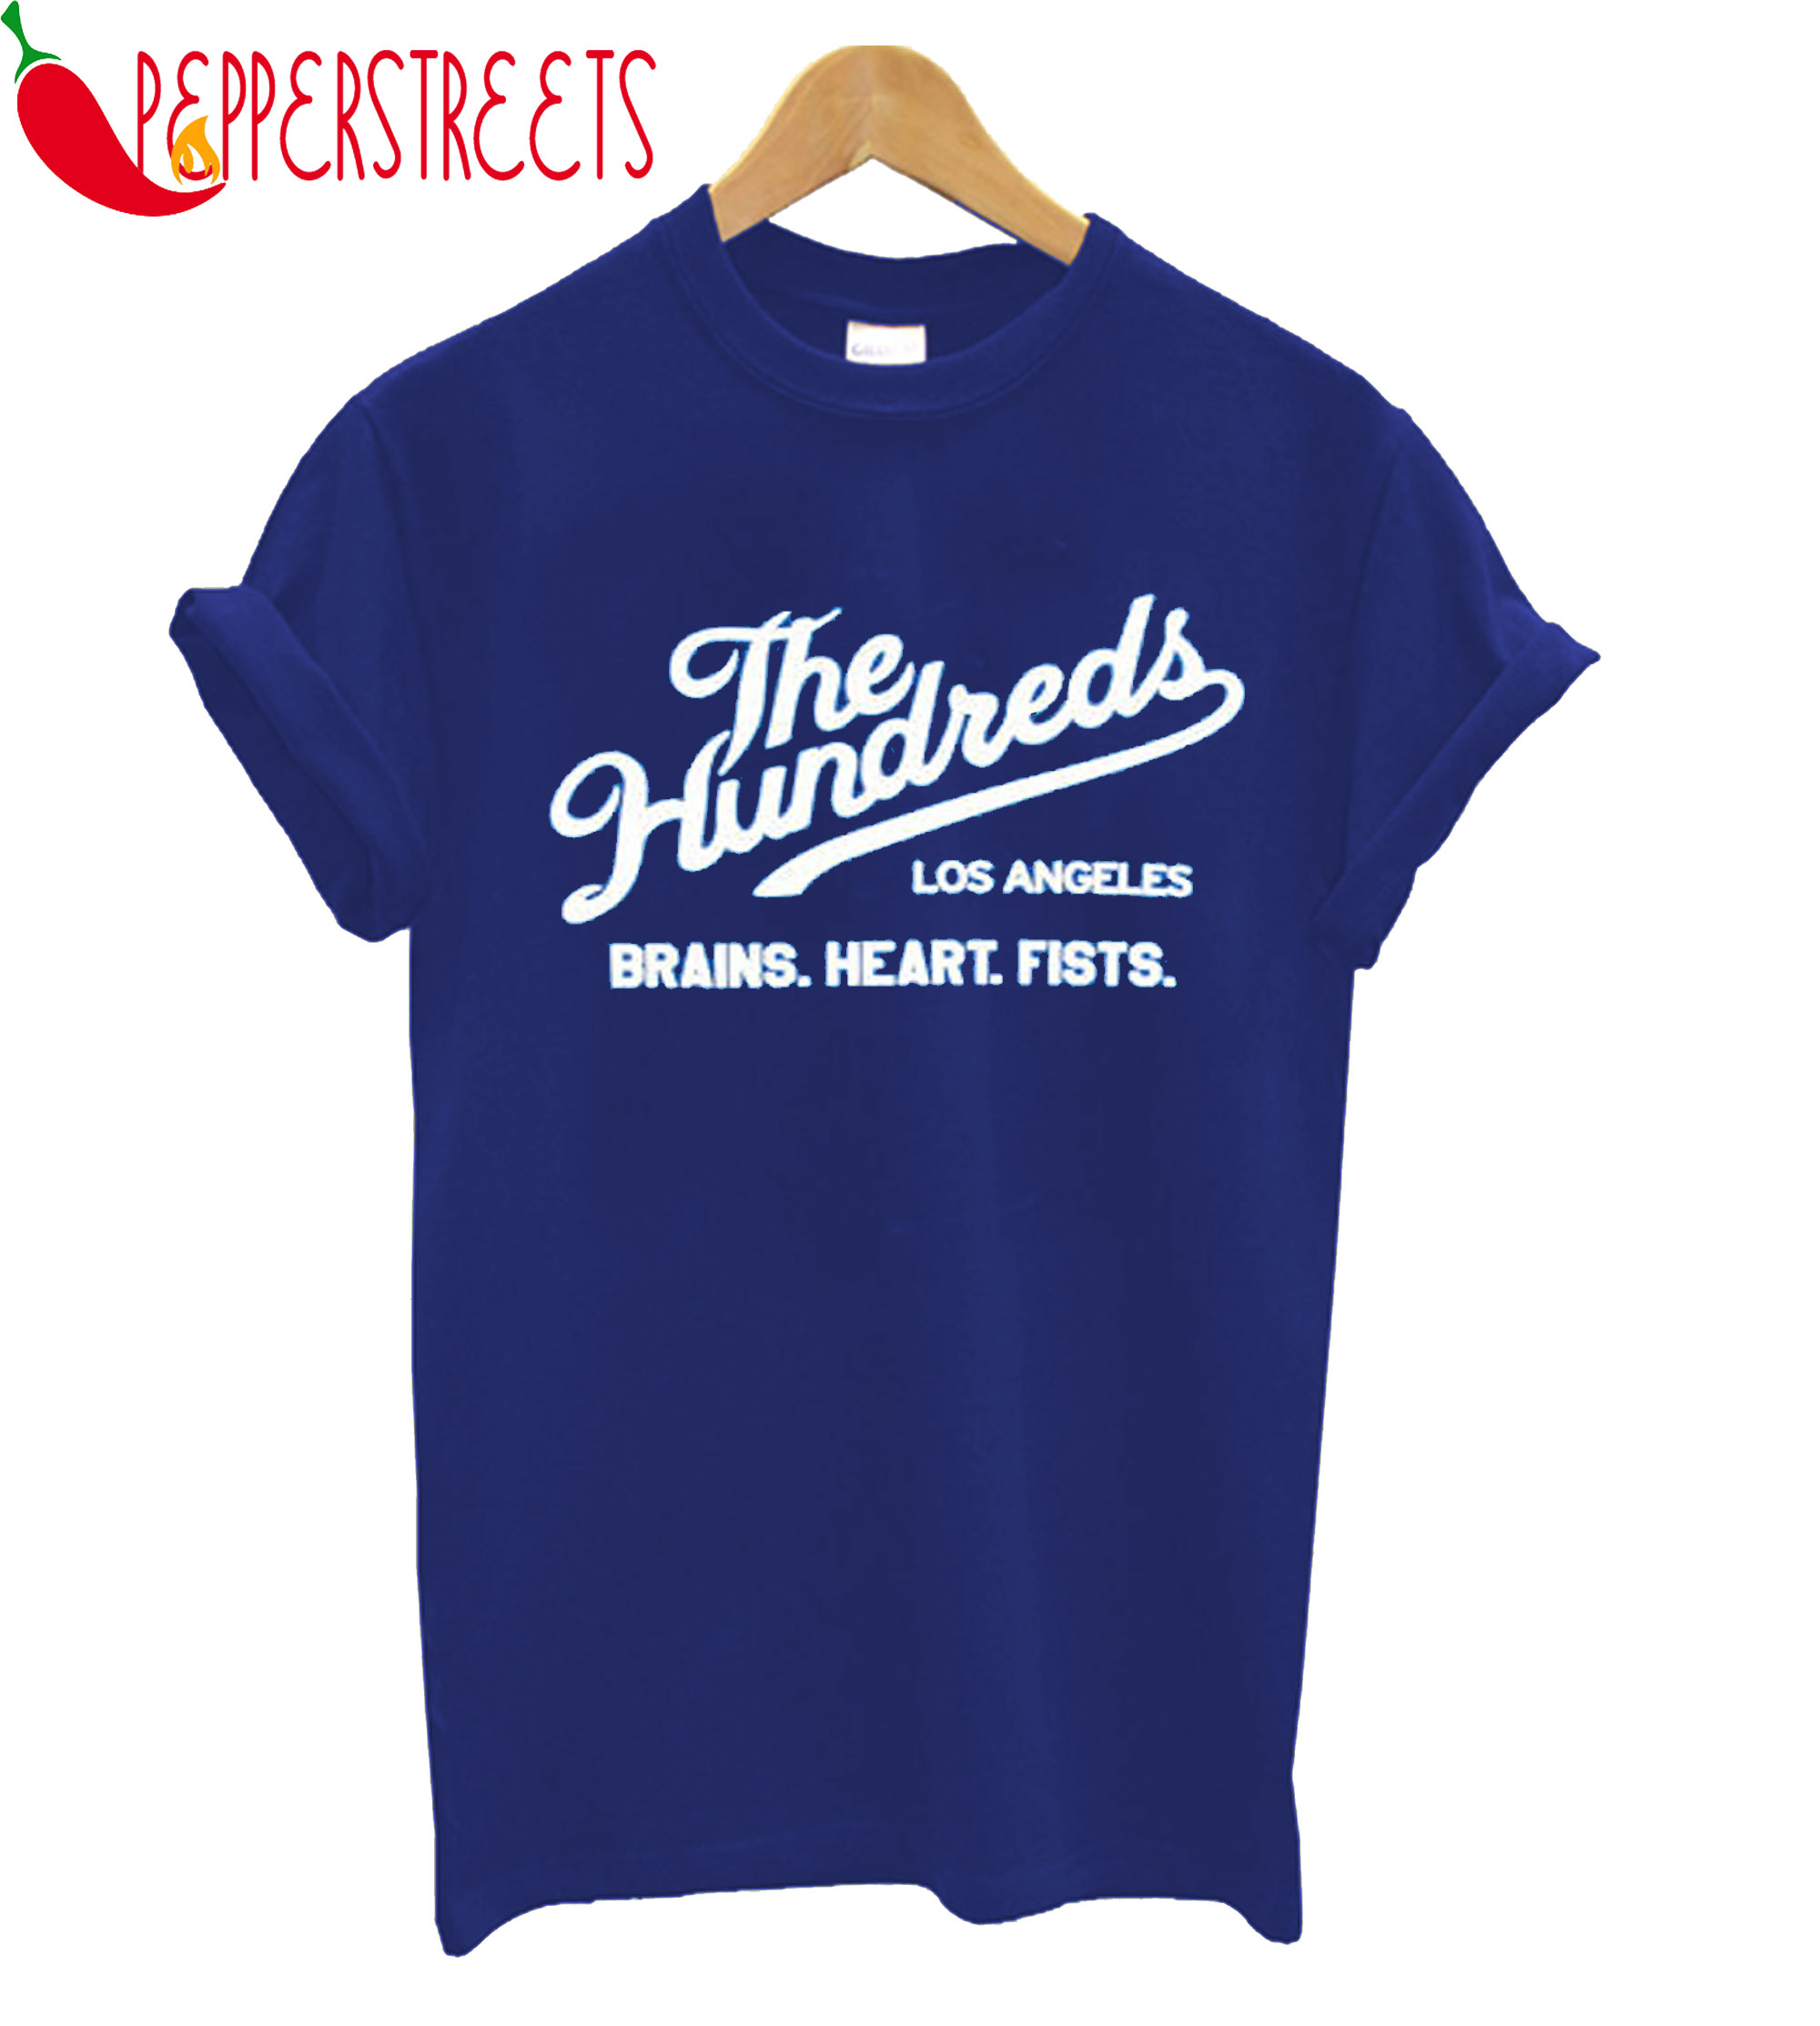 The Hundreds Los Angeles Brains Hearts Fists T-Shirt